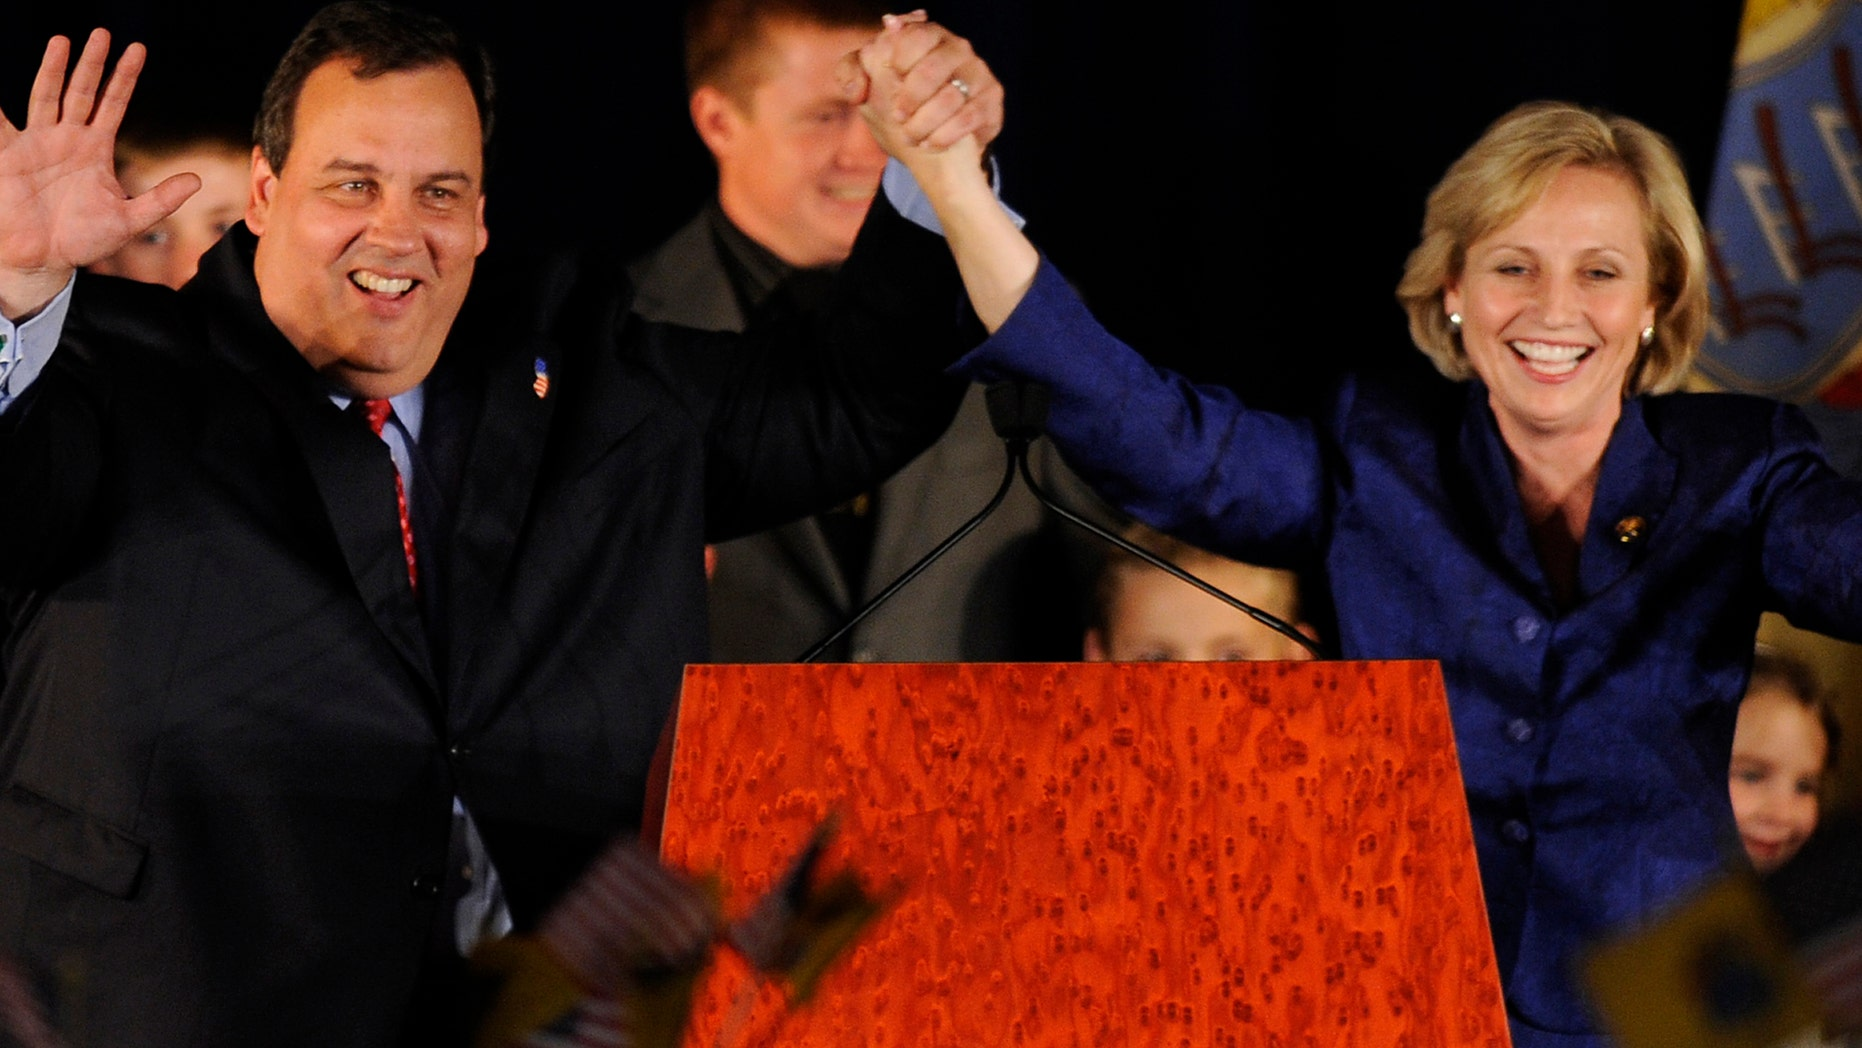 Governor Chris Christie and Lt. Governor Kim Guadagno on November 3, 2009 in Parsippany New Jersey.